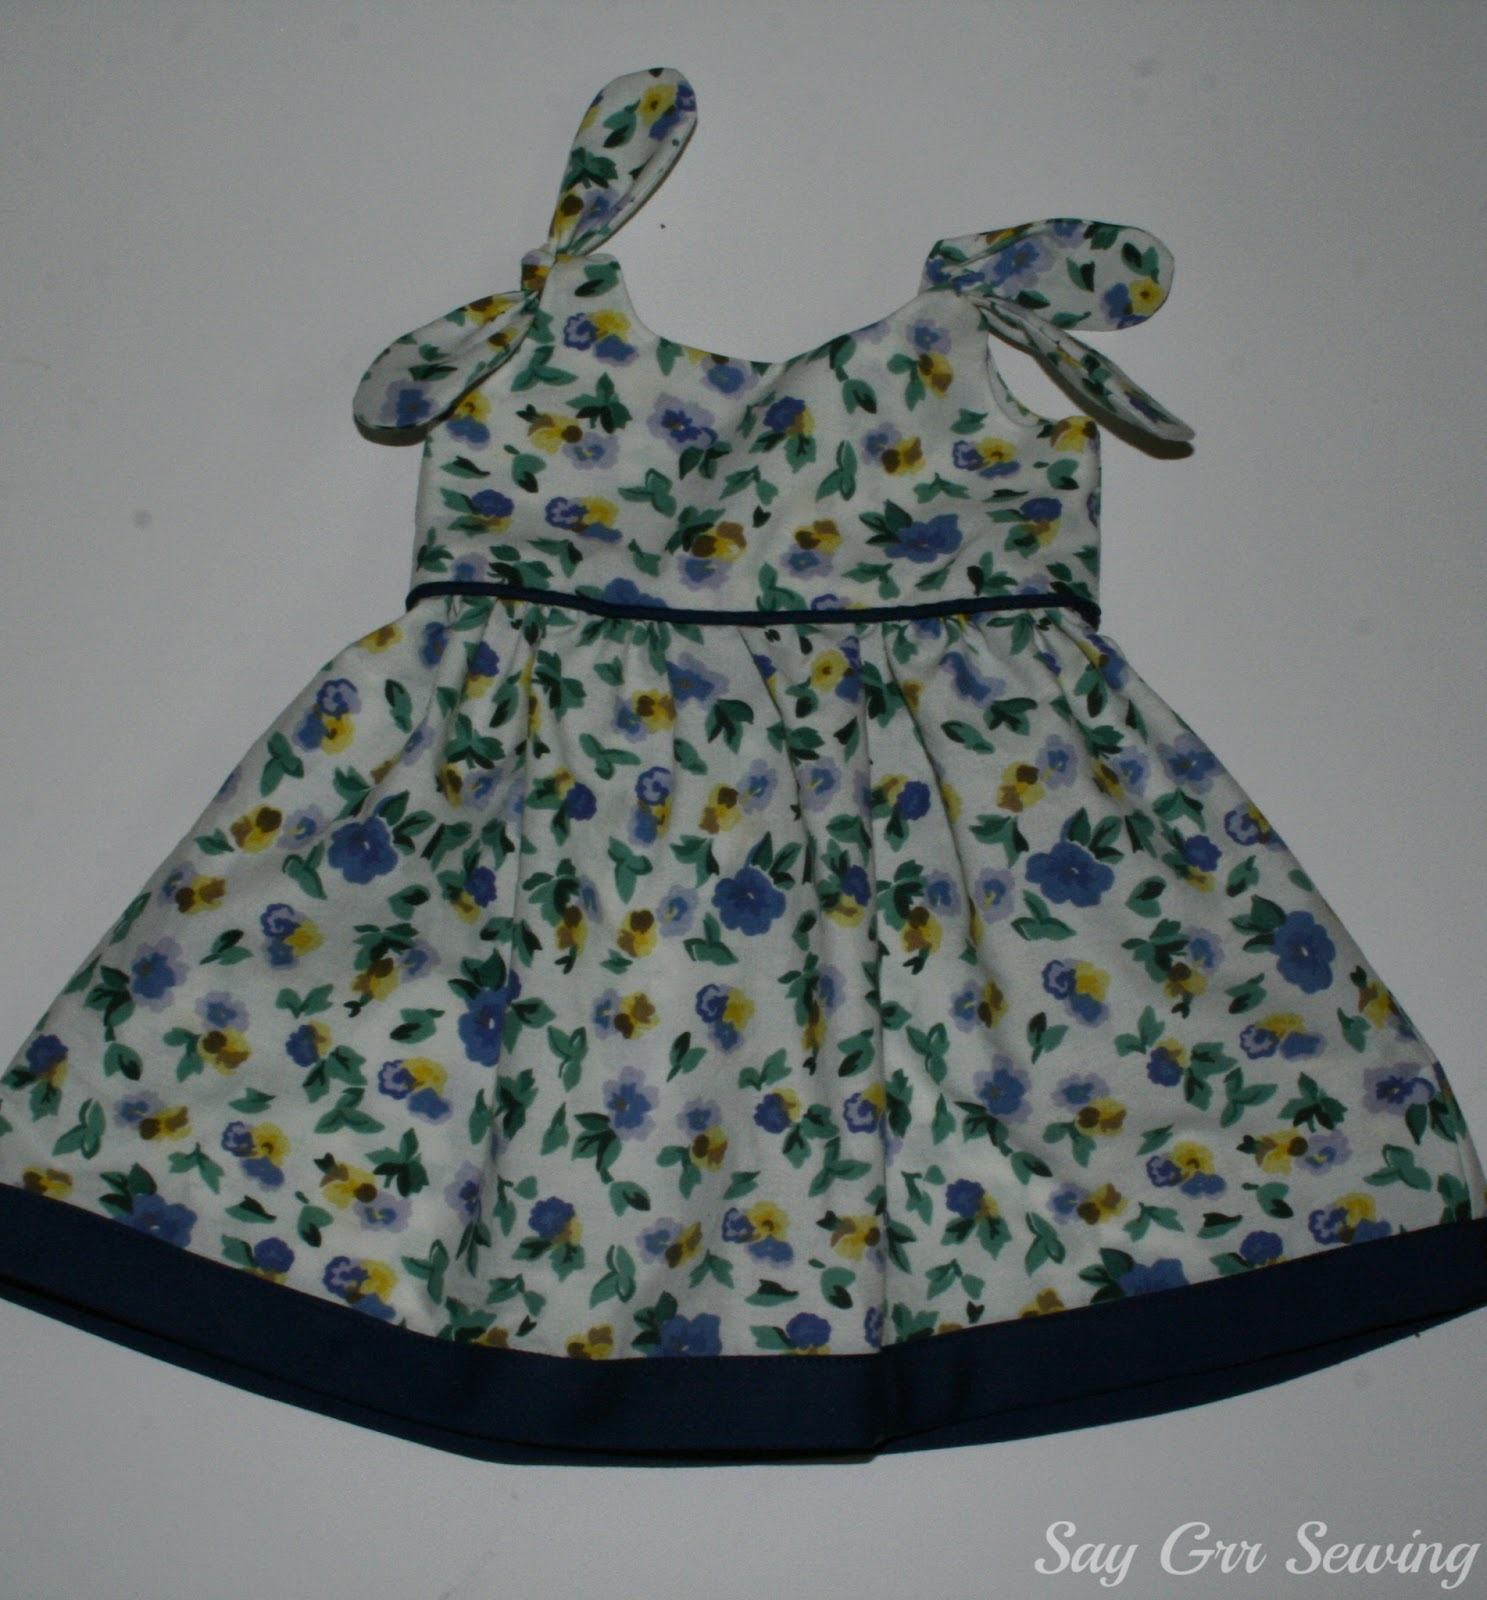 Say Grr Sewing Itty Bitty Baby Dress For Beckers